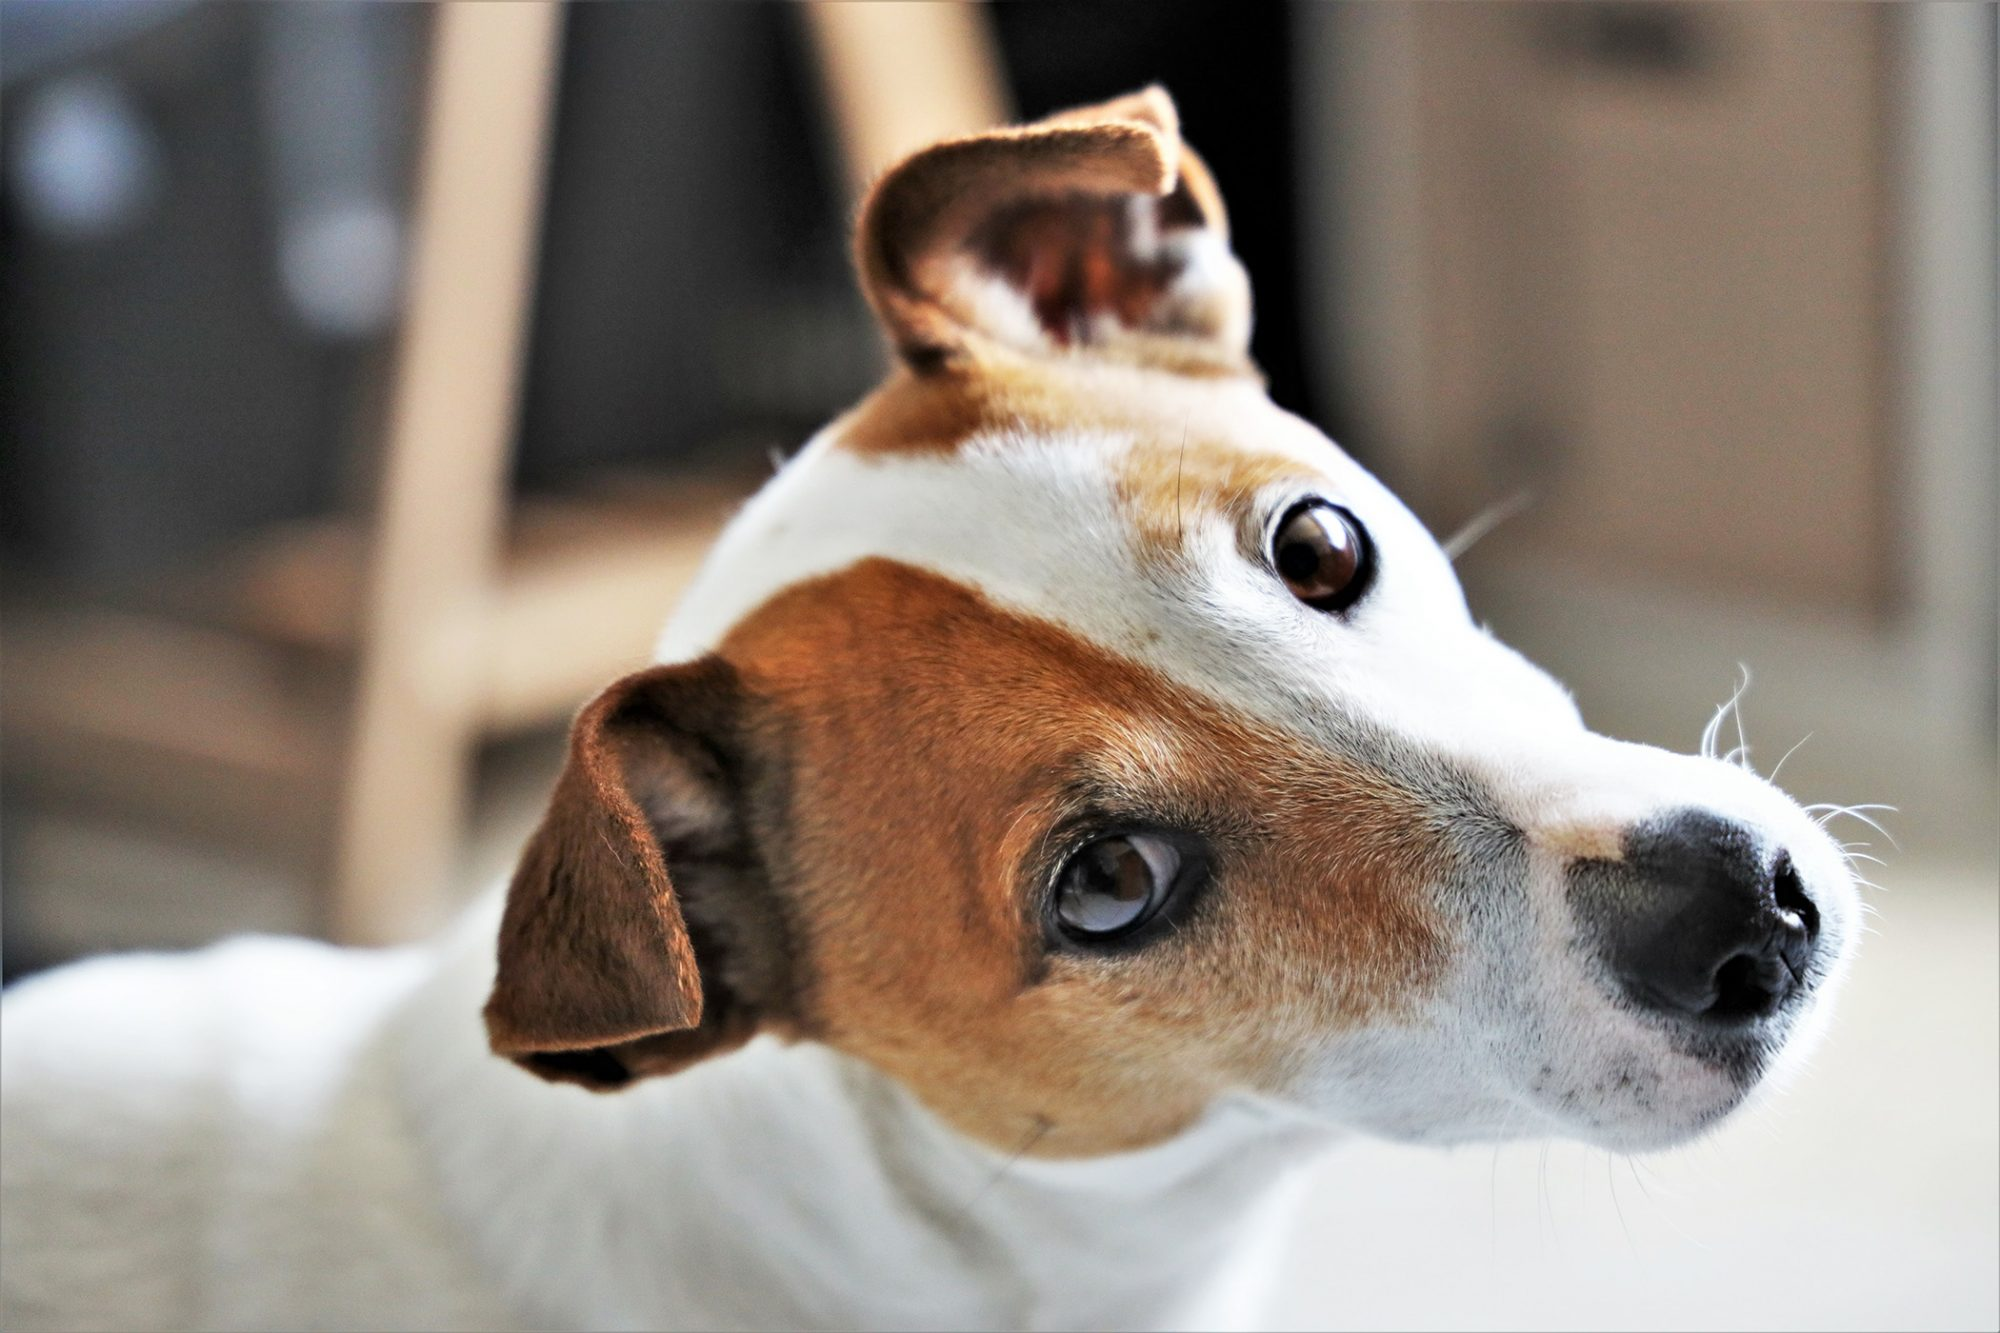 Jack russell terrier tilts head at the camera